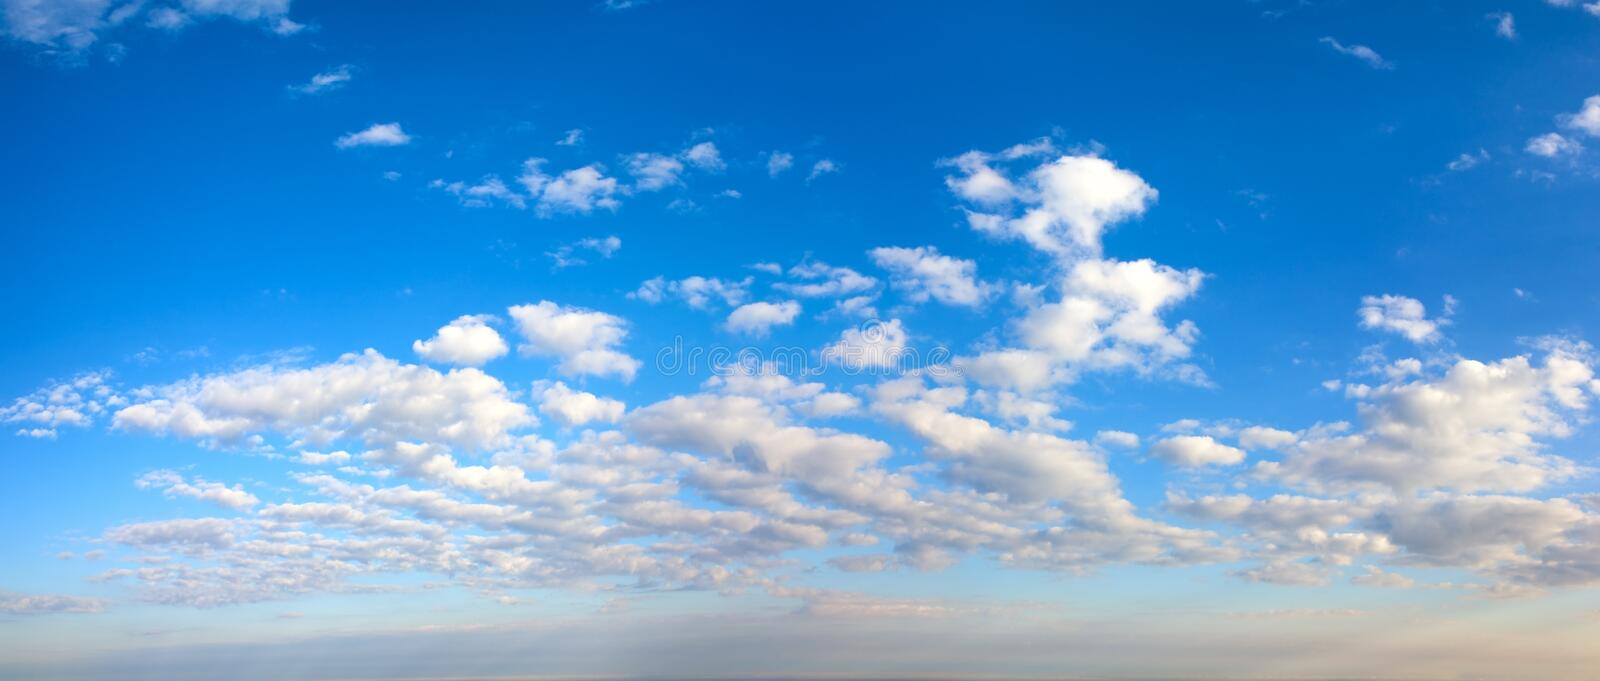 Morning blue sky panorama. royalty free stock images